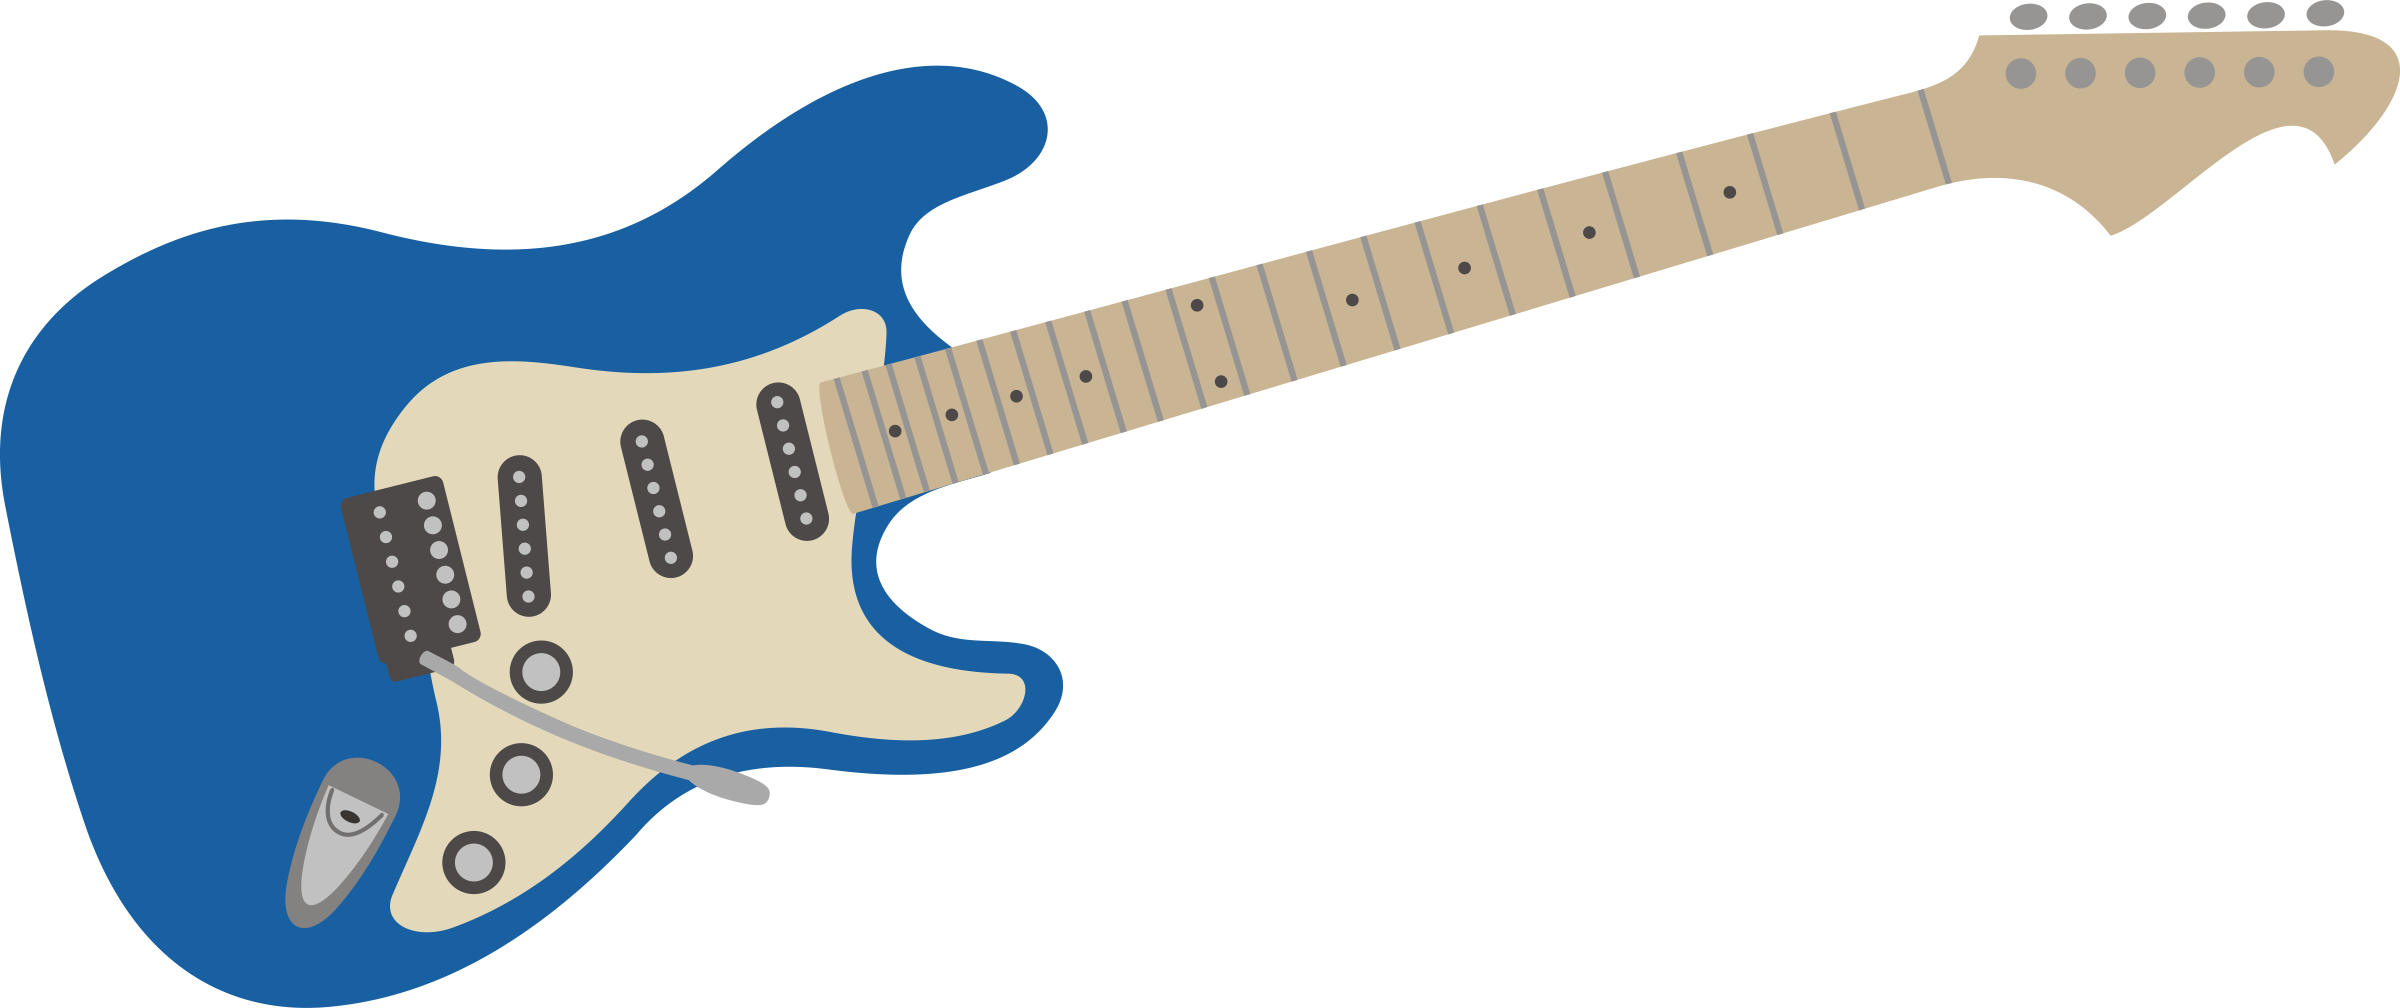 Fender guitar clipart graphic transparent library HD Electric Guitar - Fender Stratocaster Transparent PNG Image ... graphic transparent library